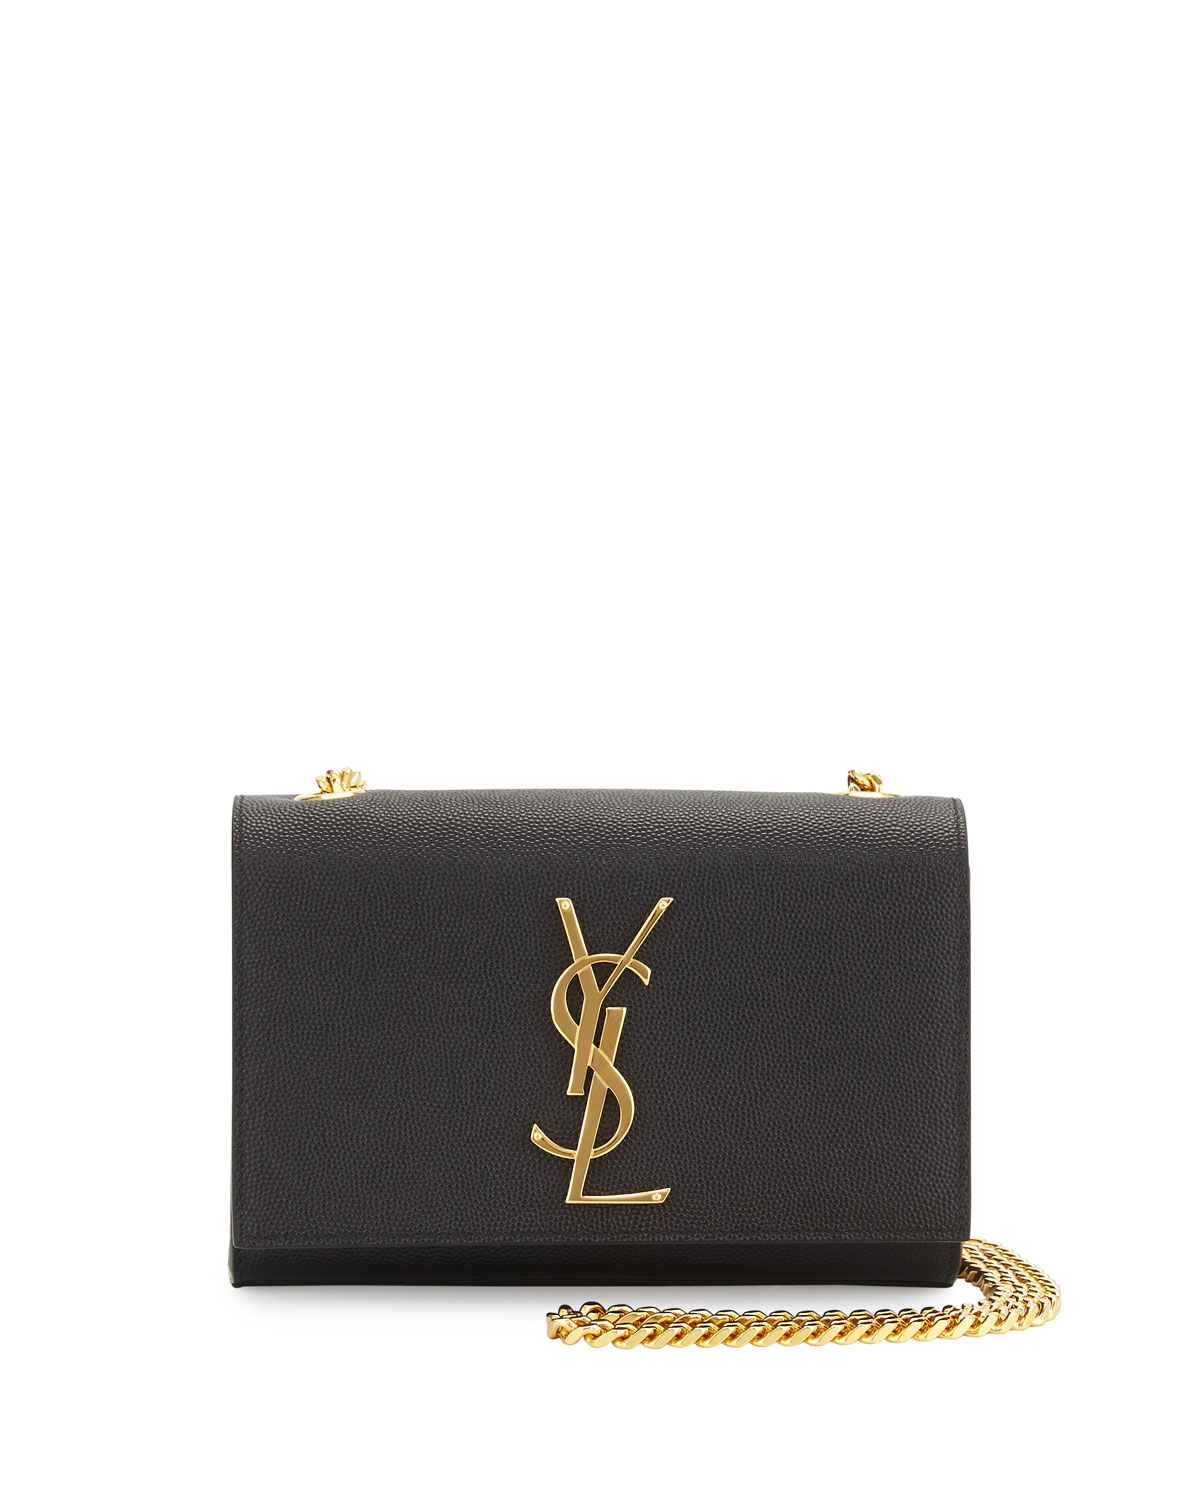 Saint Laurent Kate Monogram YSL Leather Crossbody Bag 8a926680b578e